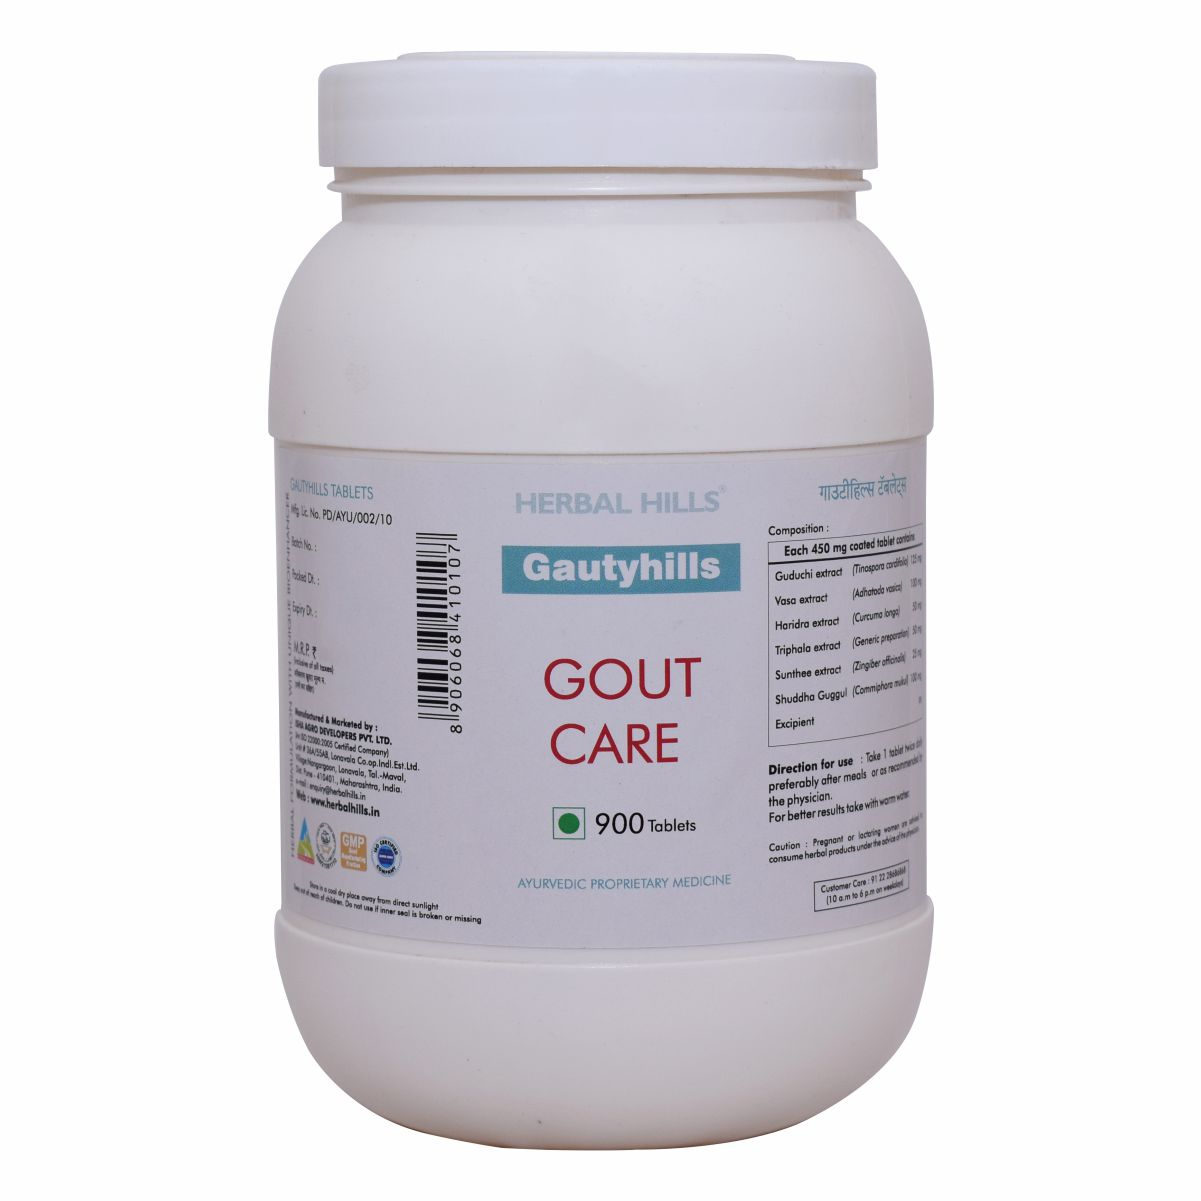 Gautyhills Value Pack - Gout Care Tablets - 900 Tablets